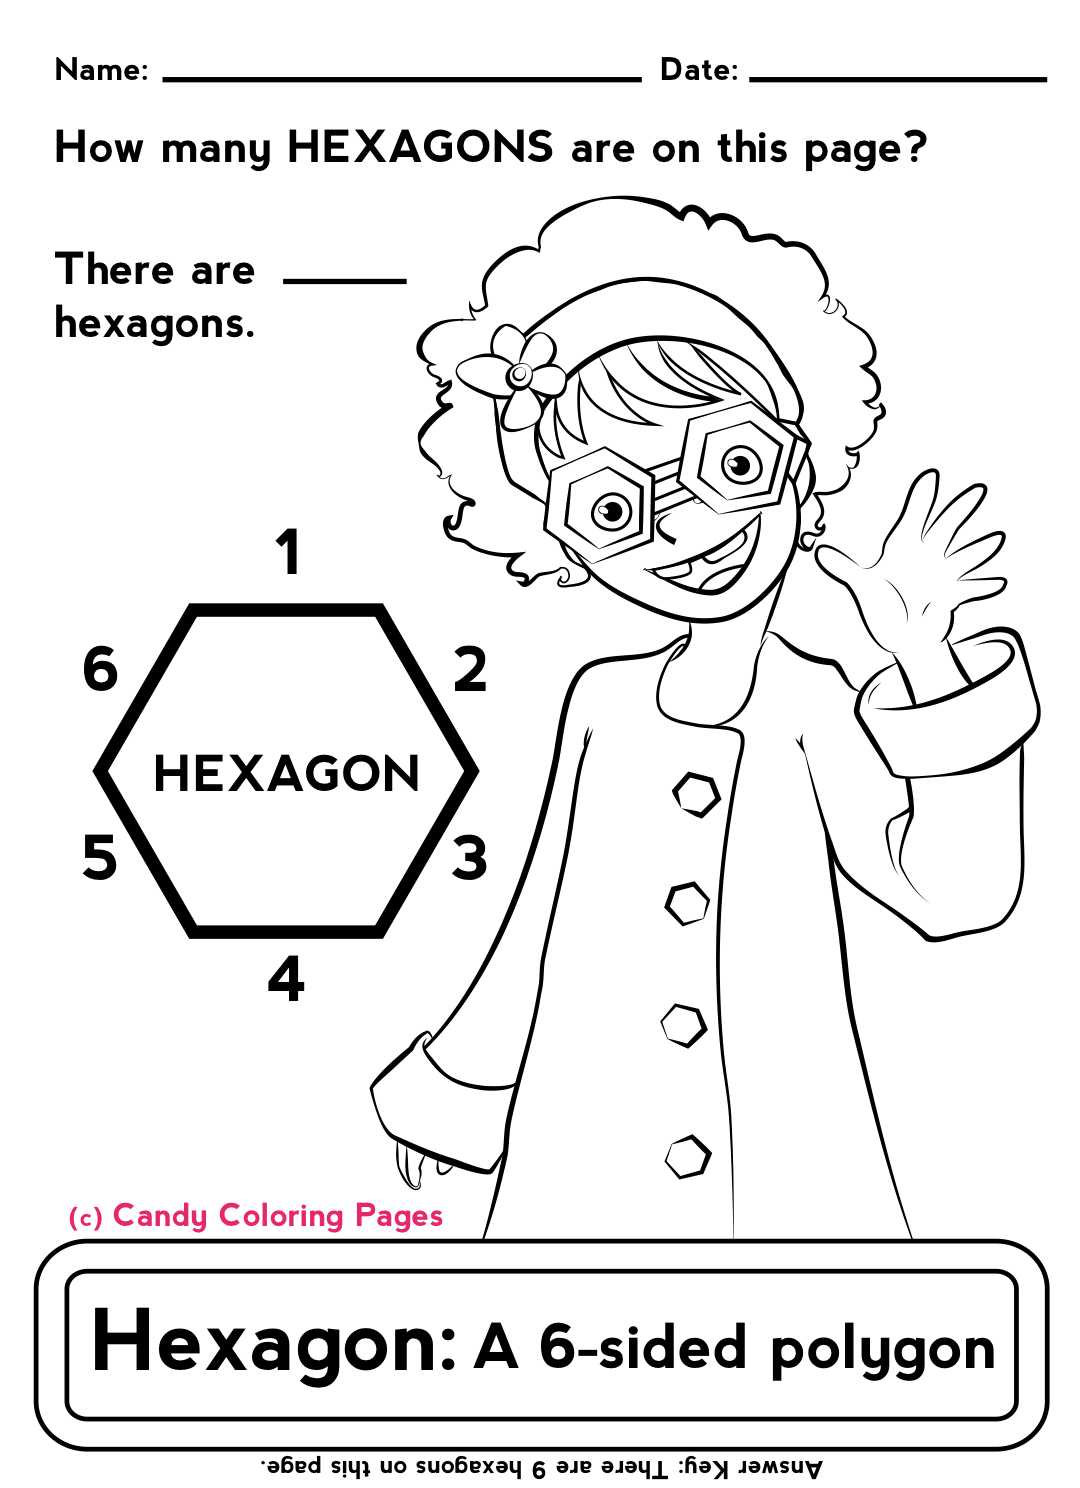 Polygons hexagon coloring pages math worksheets kinder math polygons hexagon coloring pages math worksheets robcynllc Images